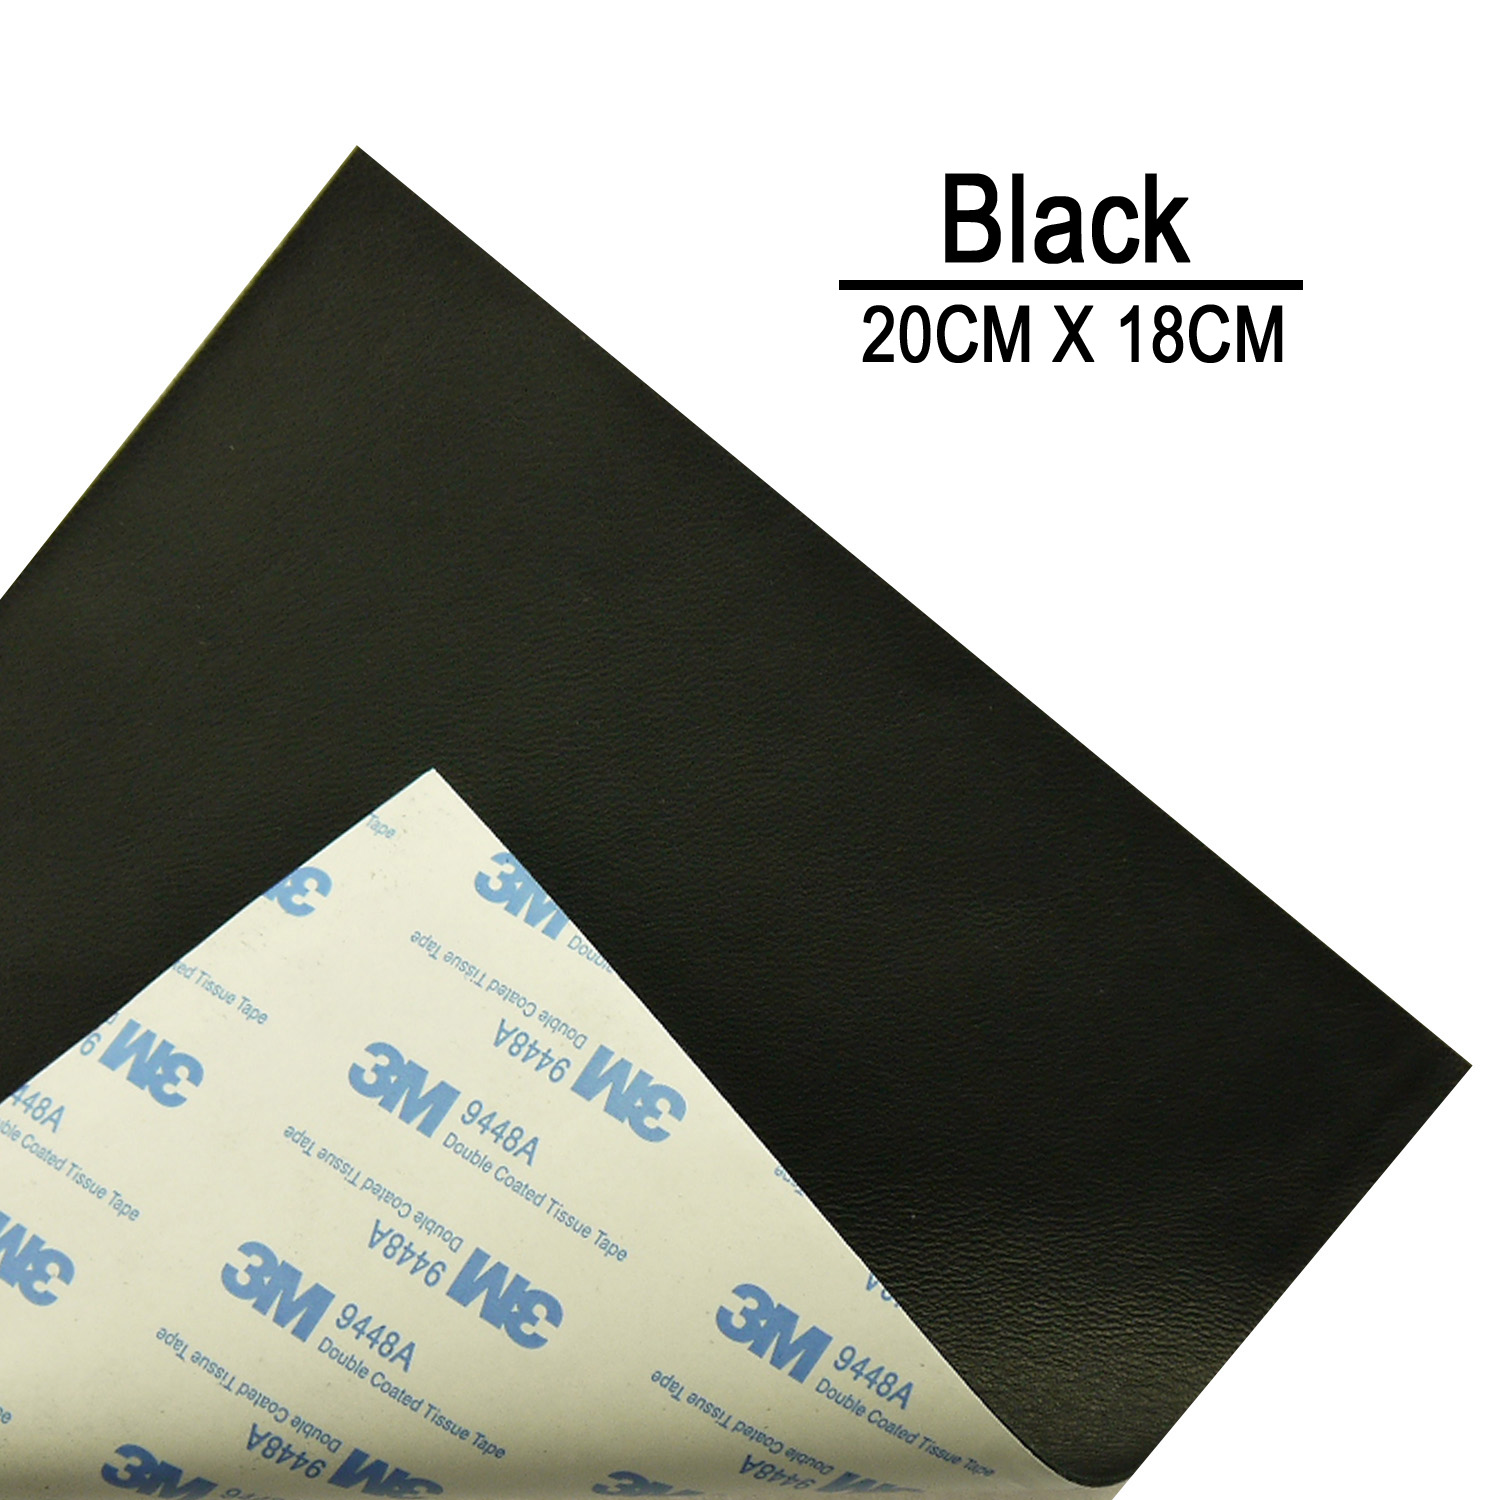 Sheep Leather Repair Patch Amp Vinyl Adhesive For Car Sofas